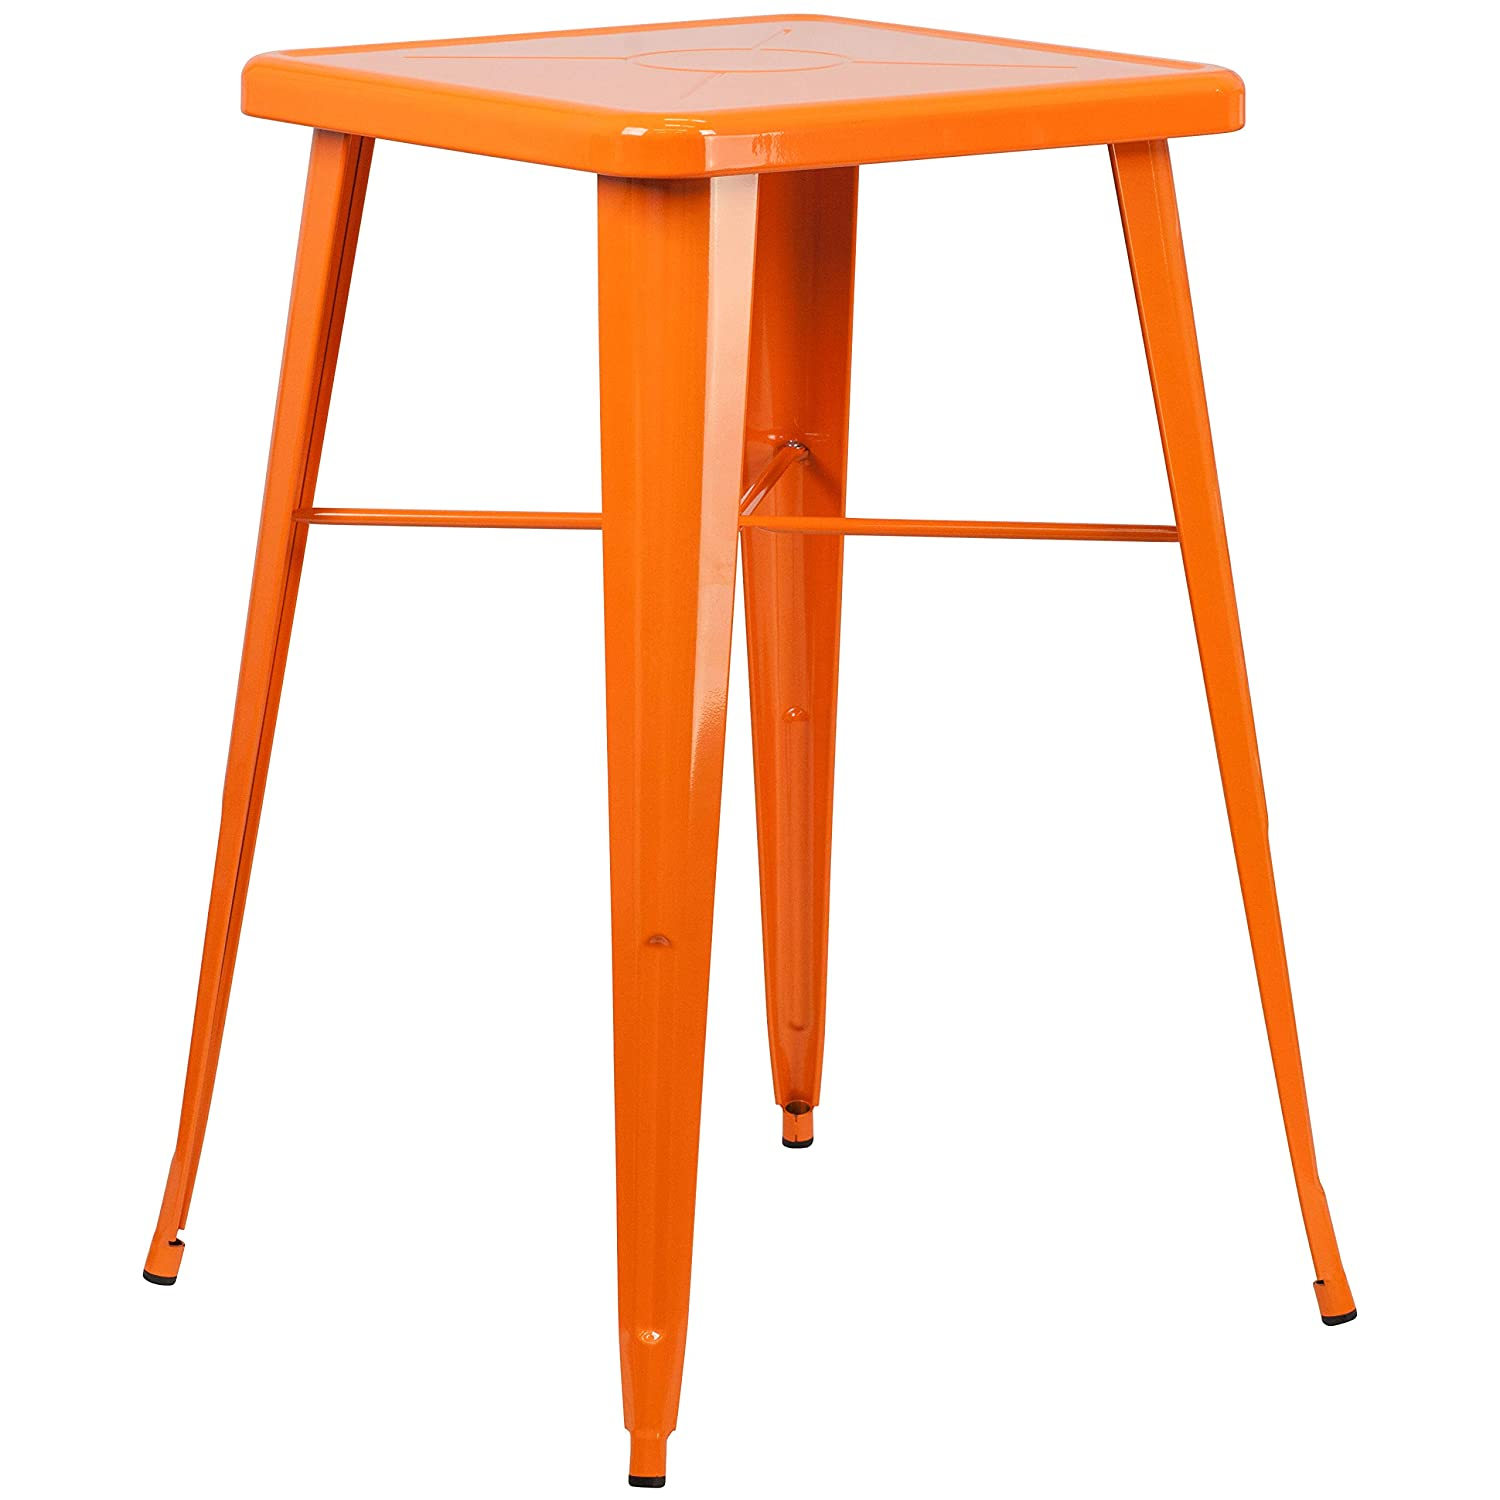 Flash Furniture 23.75 Square Orange Metal Indoor-Outdoor Bar Table Set with 2 Square Seat Backless Stools